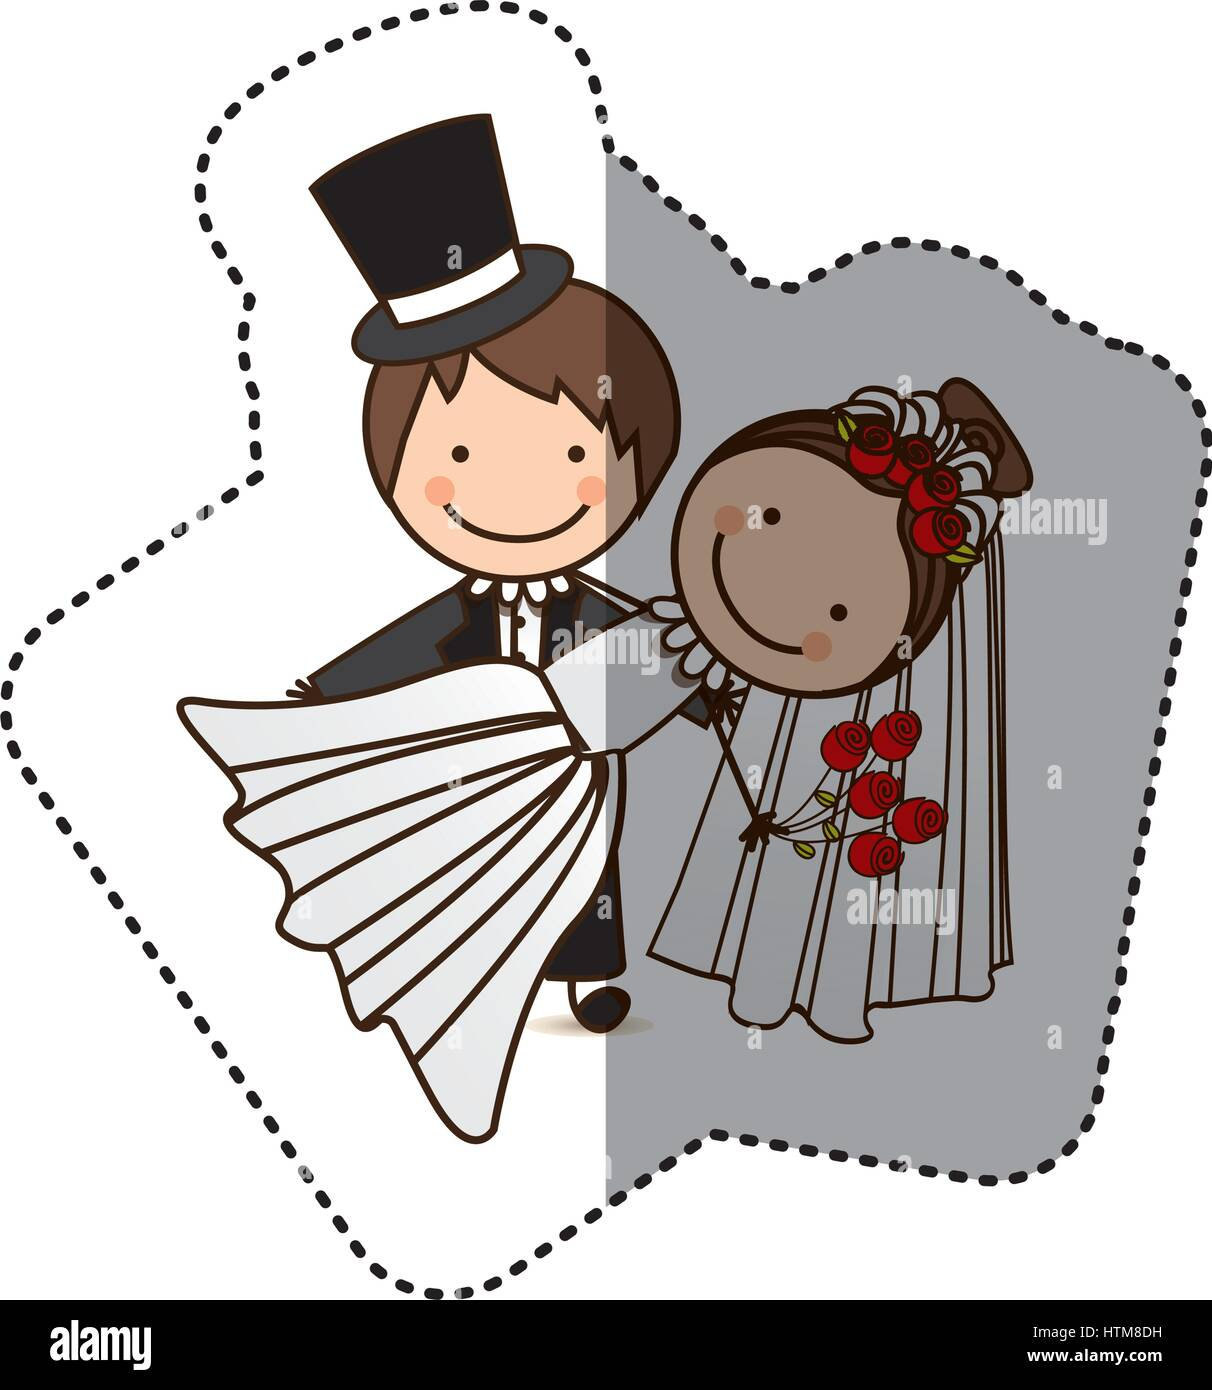 sticker colorful caricature couple wedding icon Stock Vector Art ... for Couple Sticker Line  117dqh